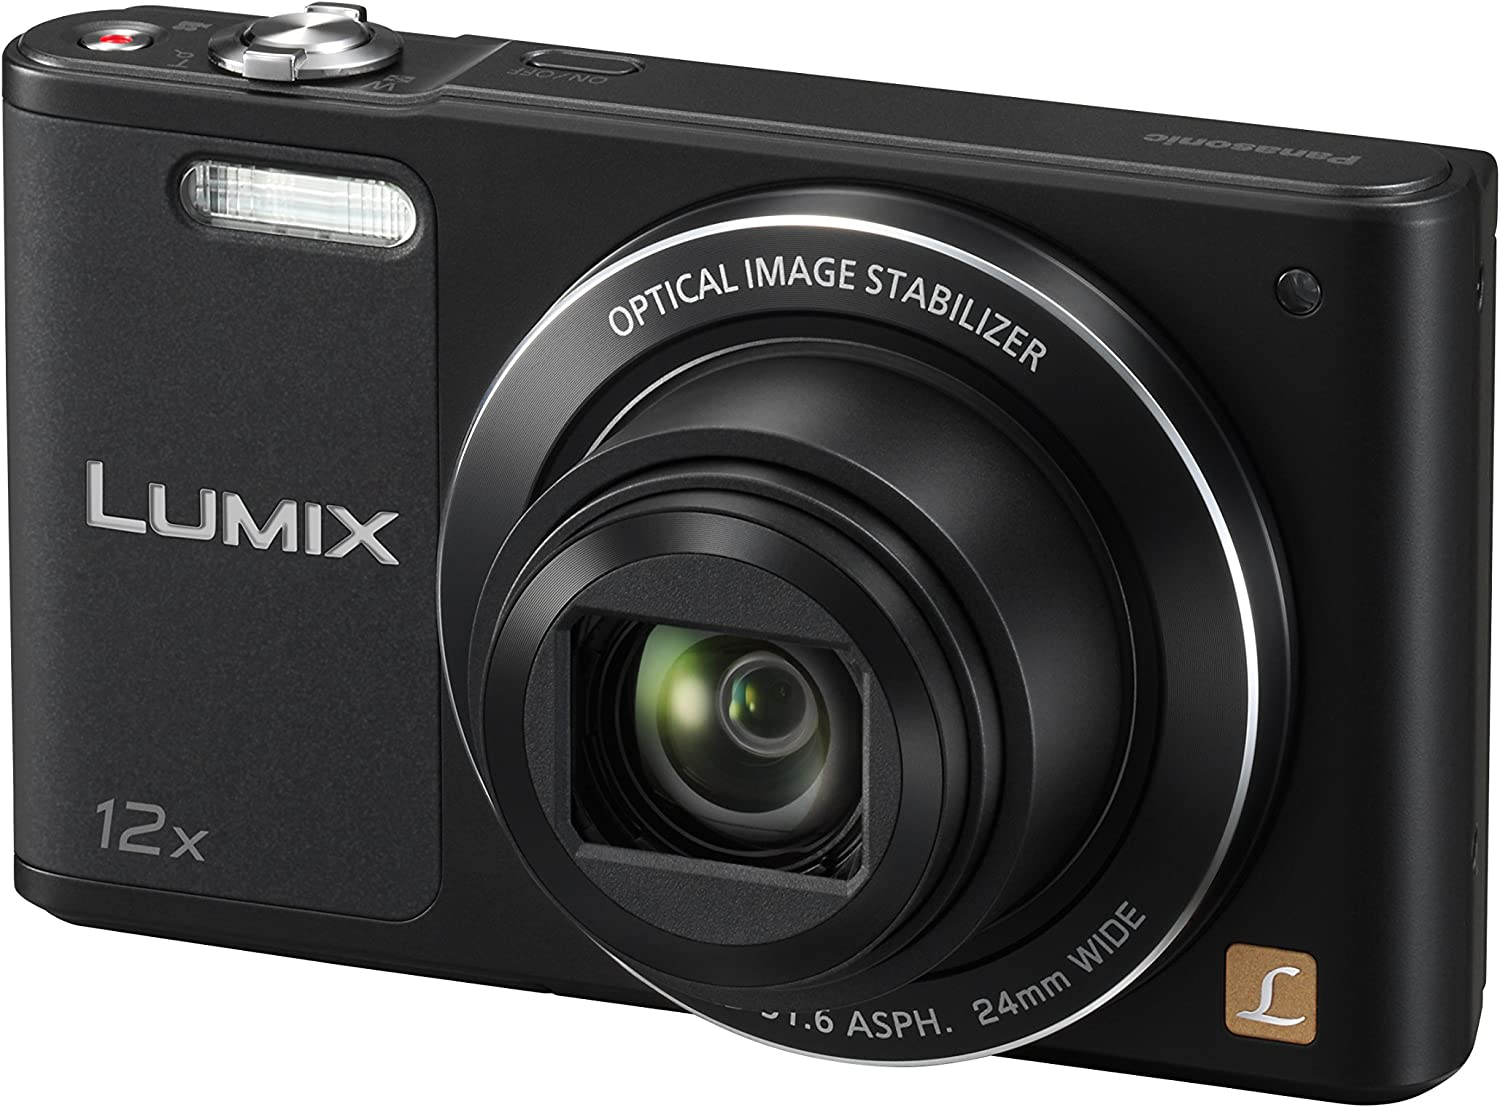 Panasonic Lumix Appareil Photo Compact Familial DMC-SZ10EF-K (Capteur 16MP, Zoom Lumix 12x, Grand angle 24mm, Ecran Inclinable, Vidéo HD, Modes Selfies, Stabilisé) Noir – Version Française